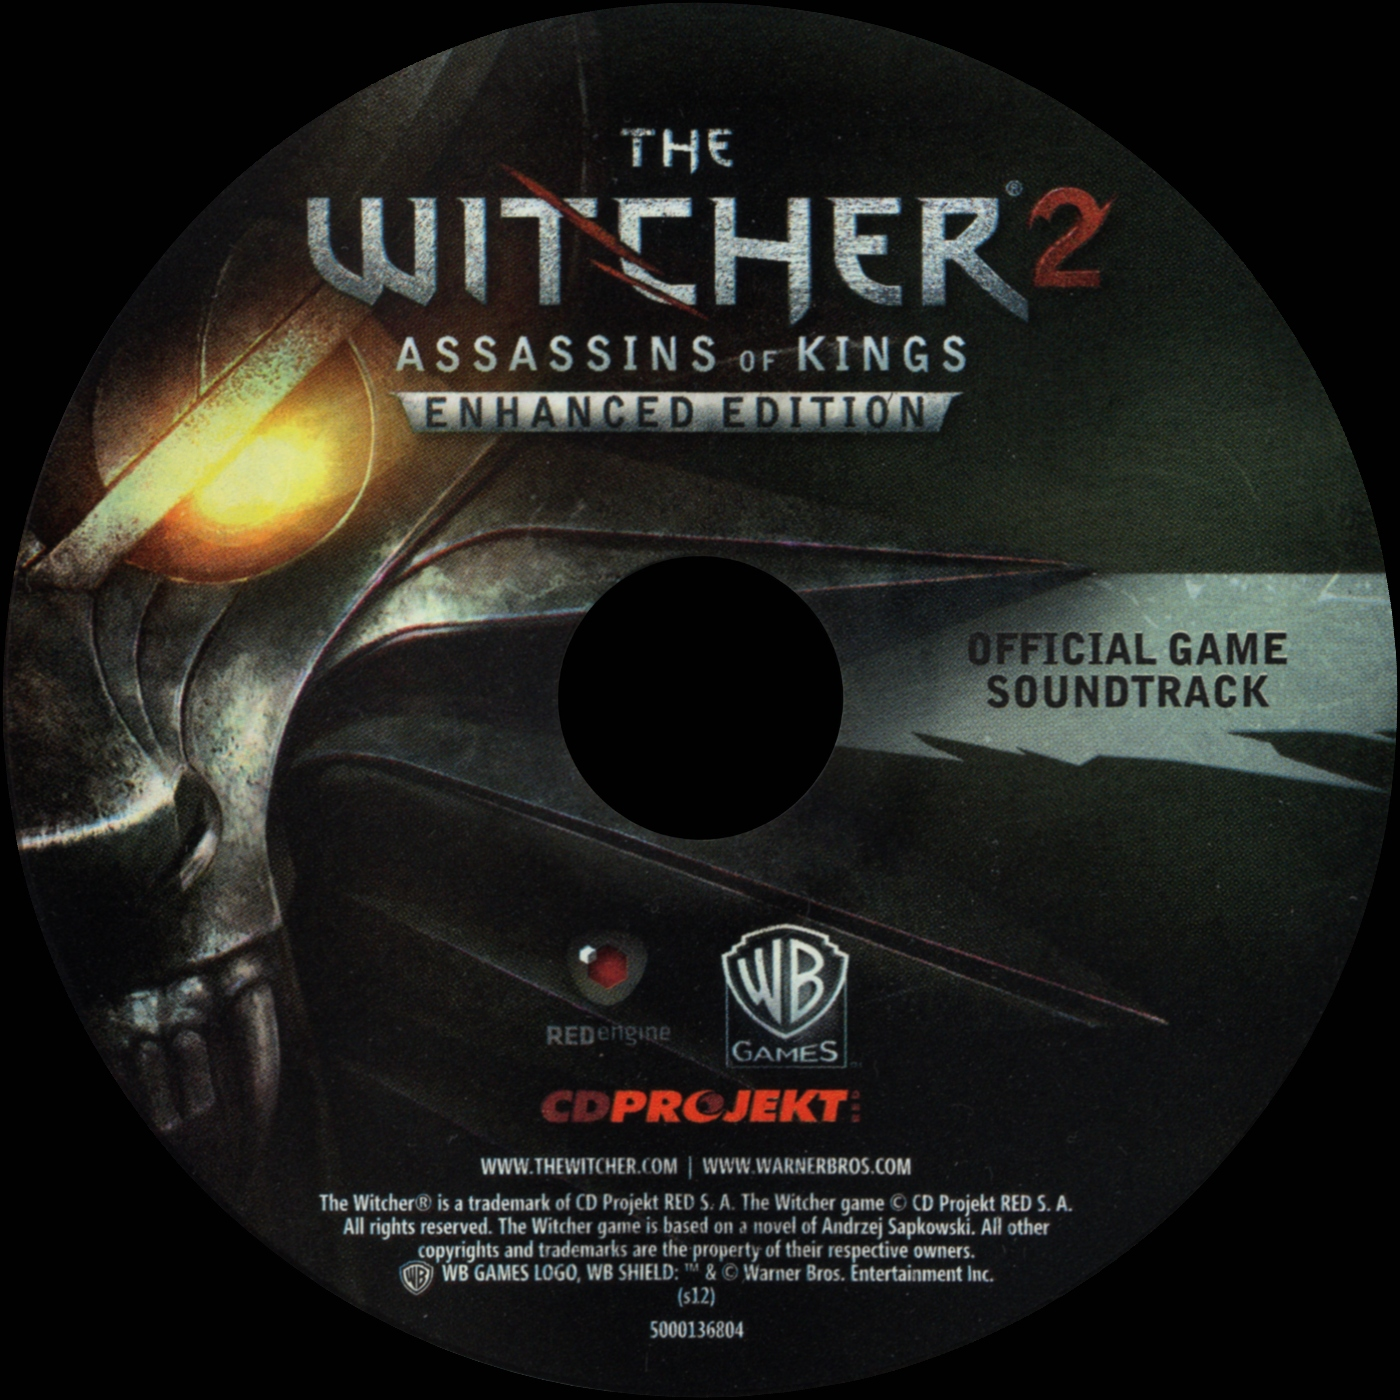 The Witcher 2: Assassins Of Kings Enhanced Edition Soundtrack Download